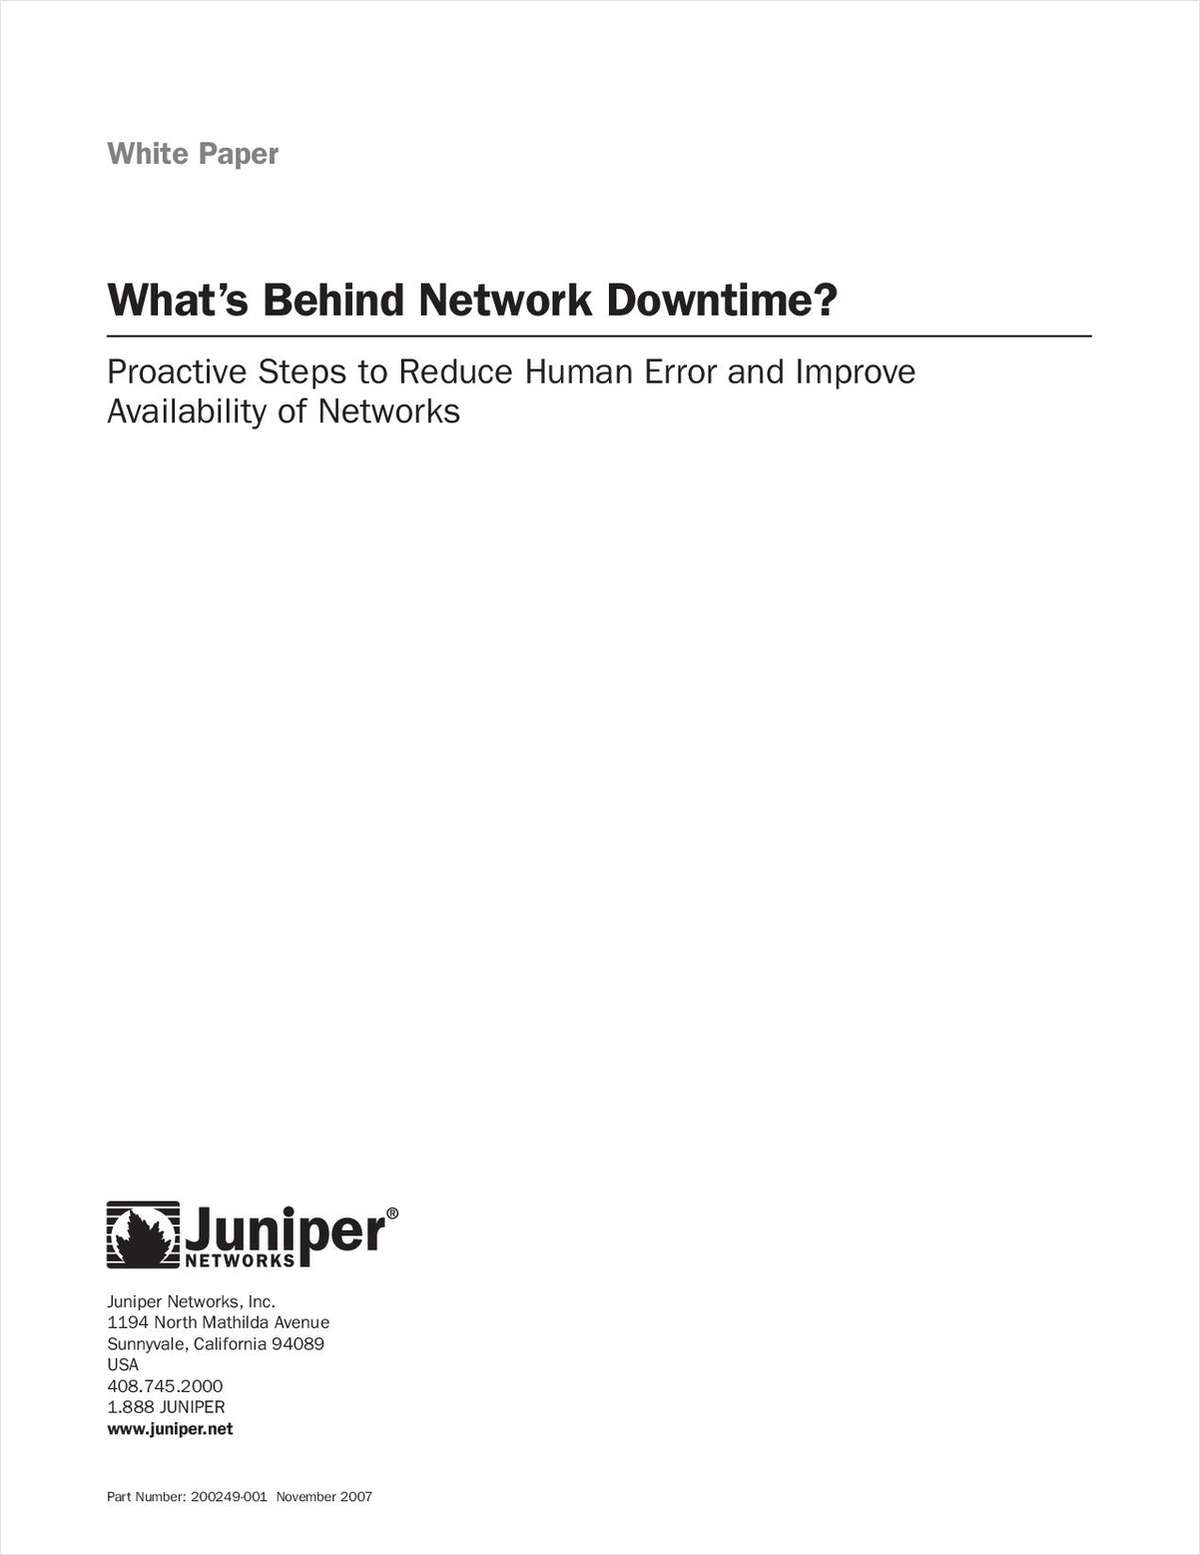 Discover What's Behind Network Downtime?